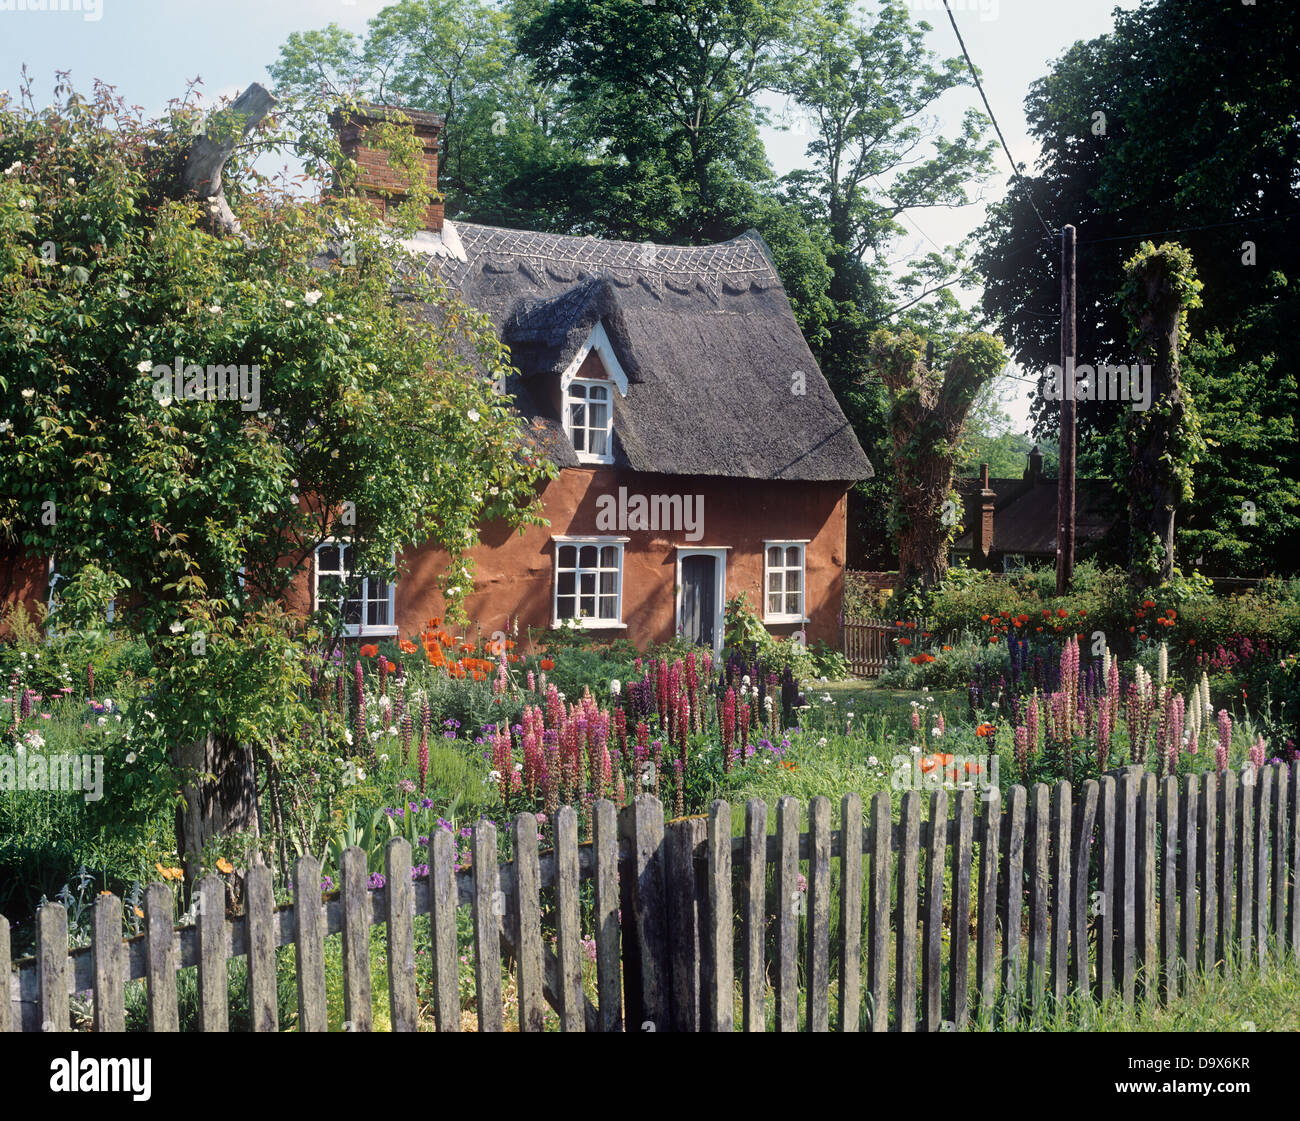 Wooden Picket Fence Around Garden With Pink Lupins In Front Of Thatched  English Country Cottage